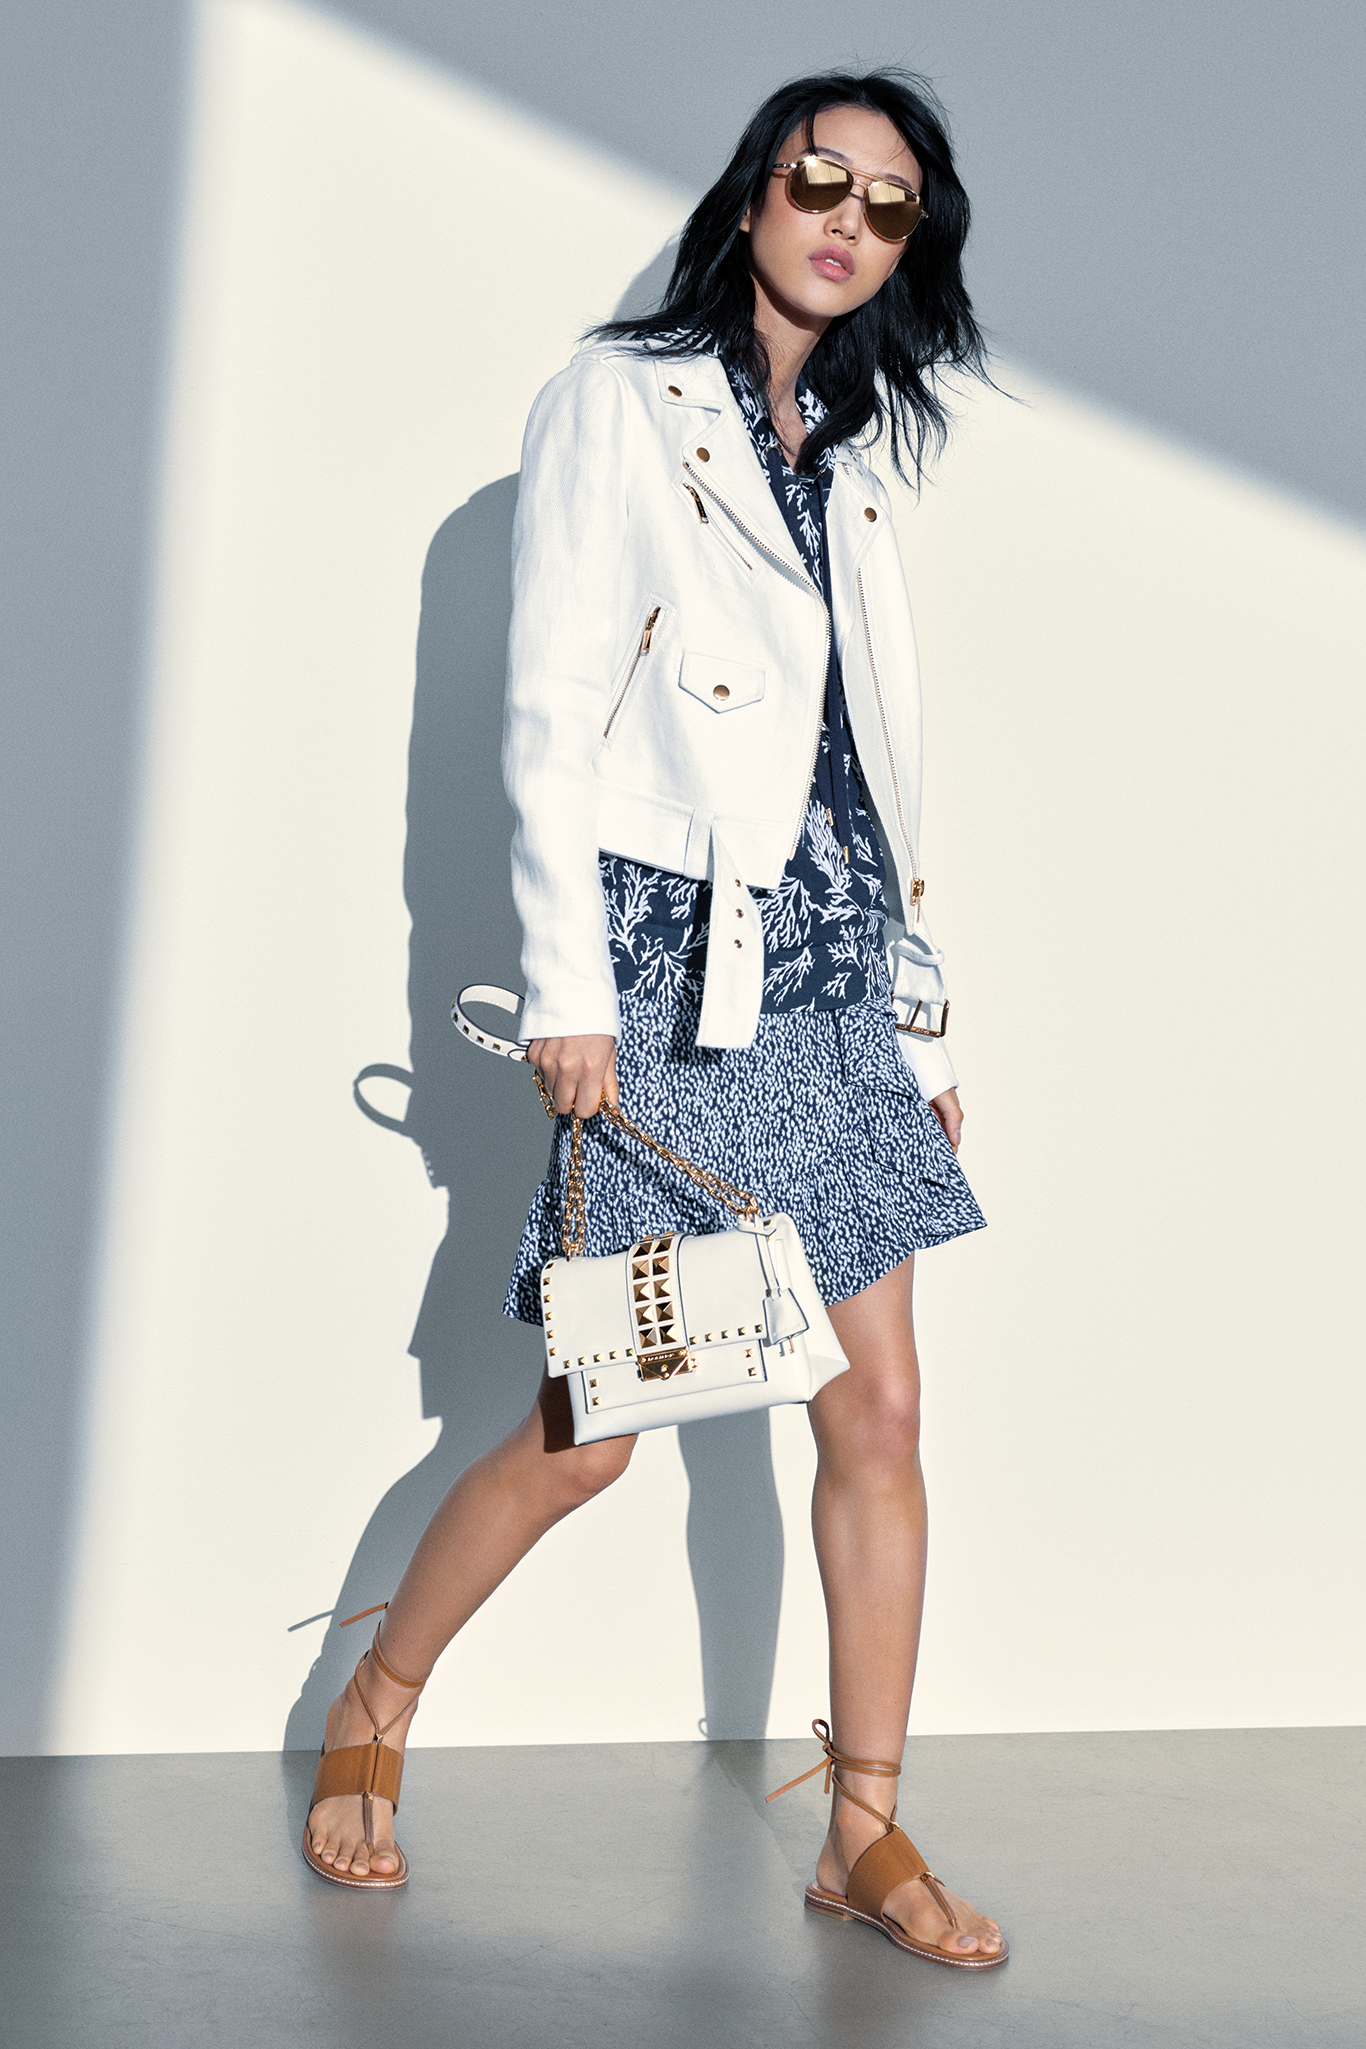 Michael Michael Kors Jet Setter's Style for a Vacation to a Mediterranean Island